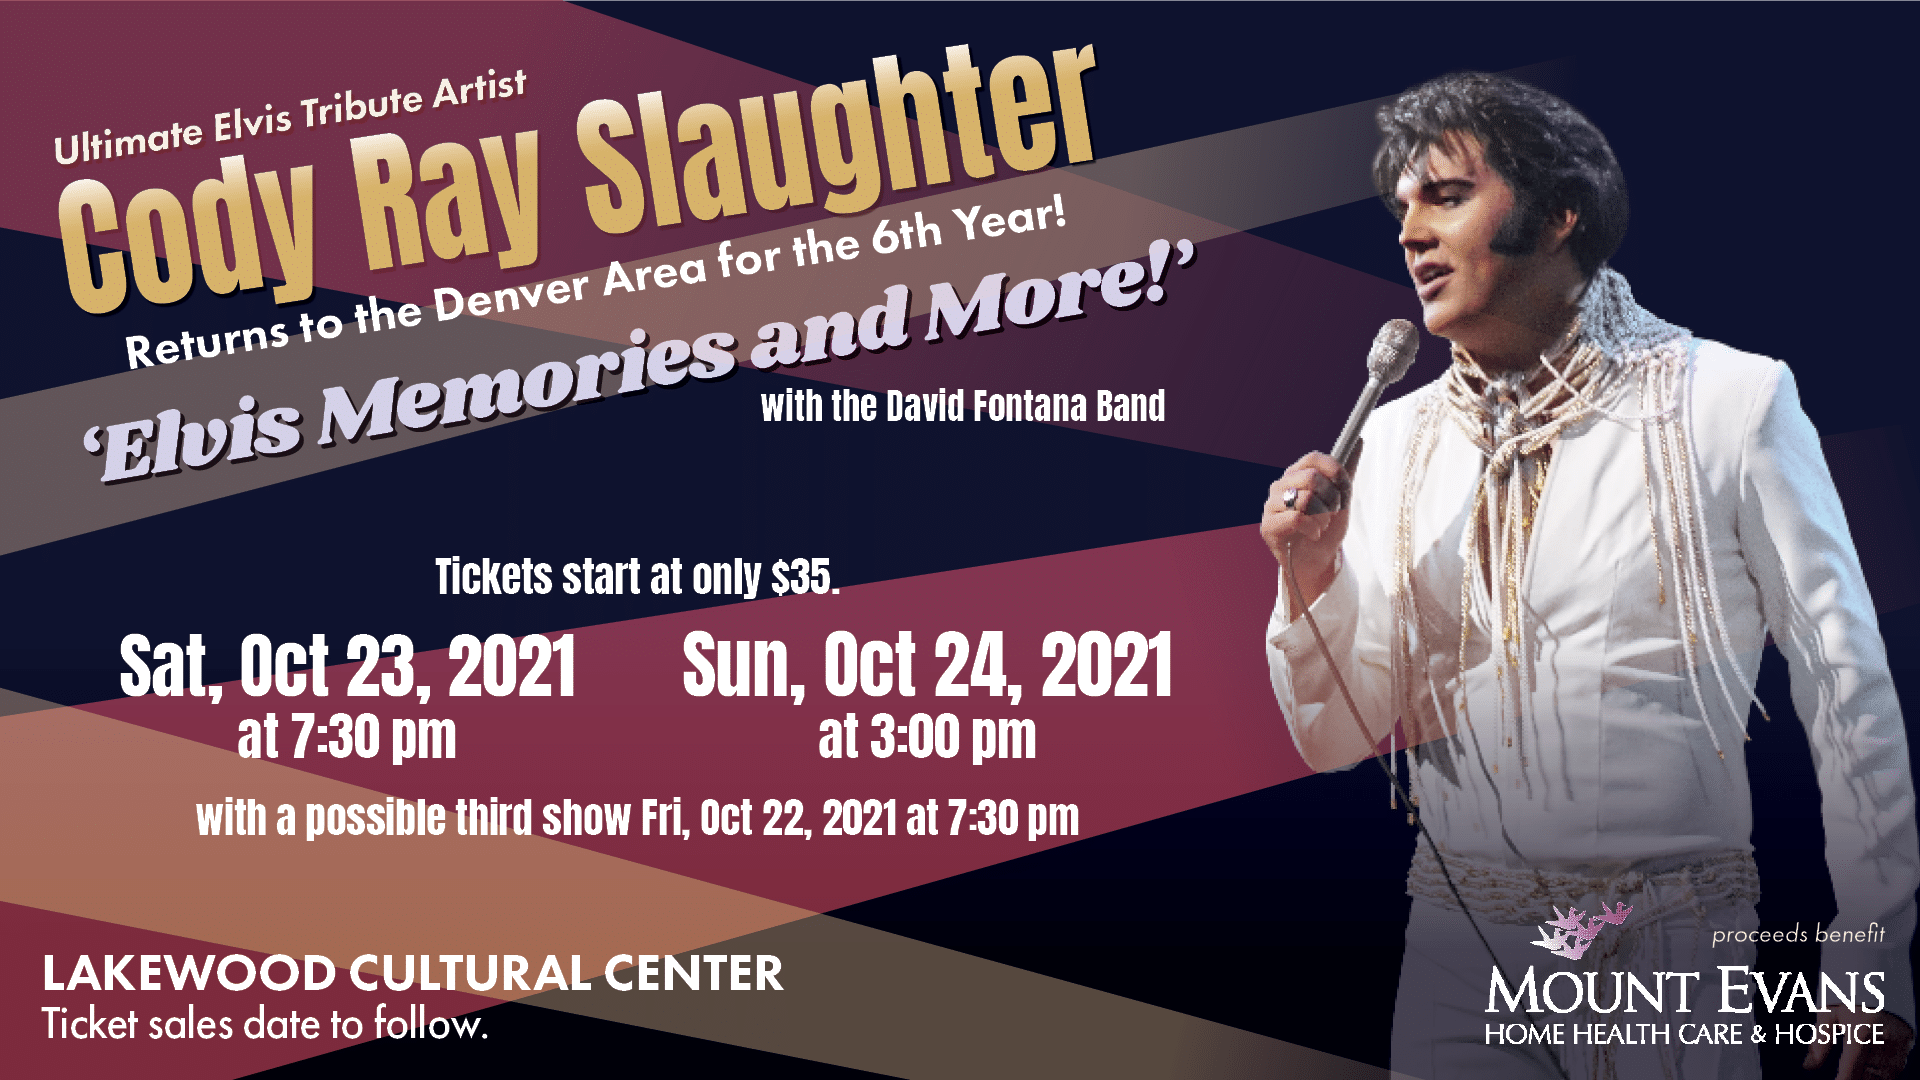 Cody Ray Slaughter: Elvis Memories and More concert graphic